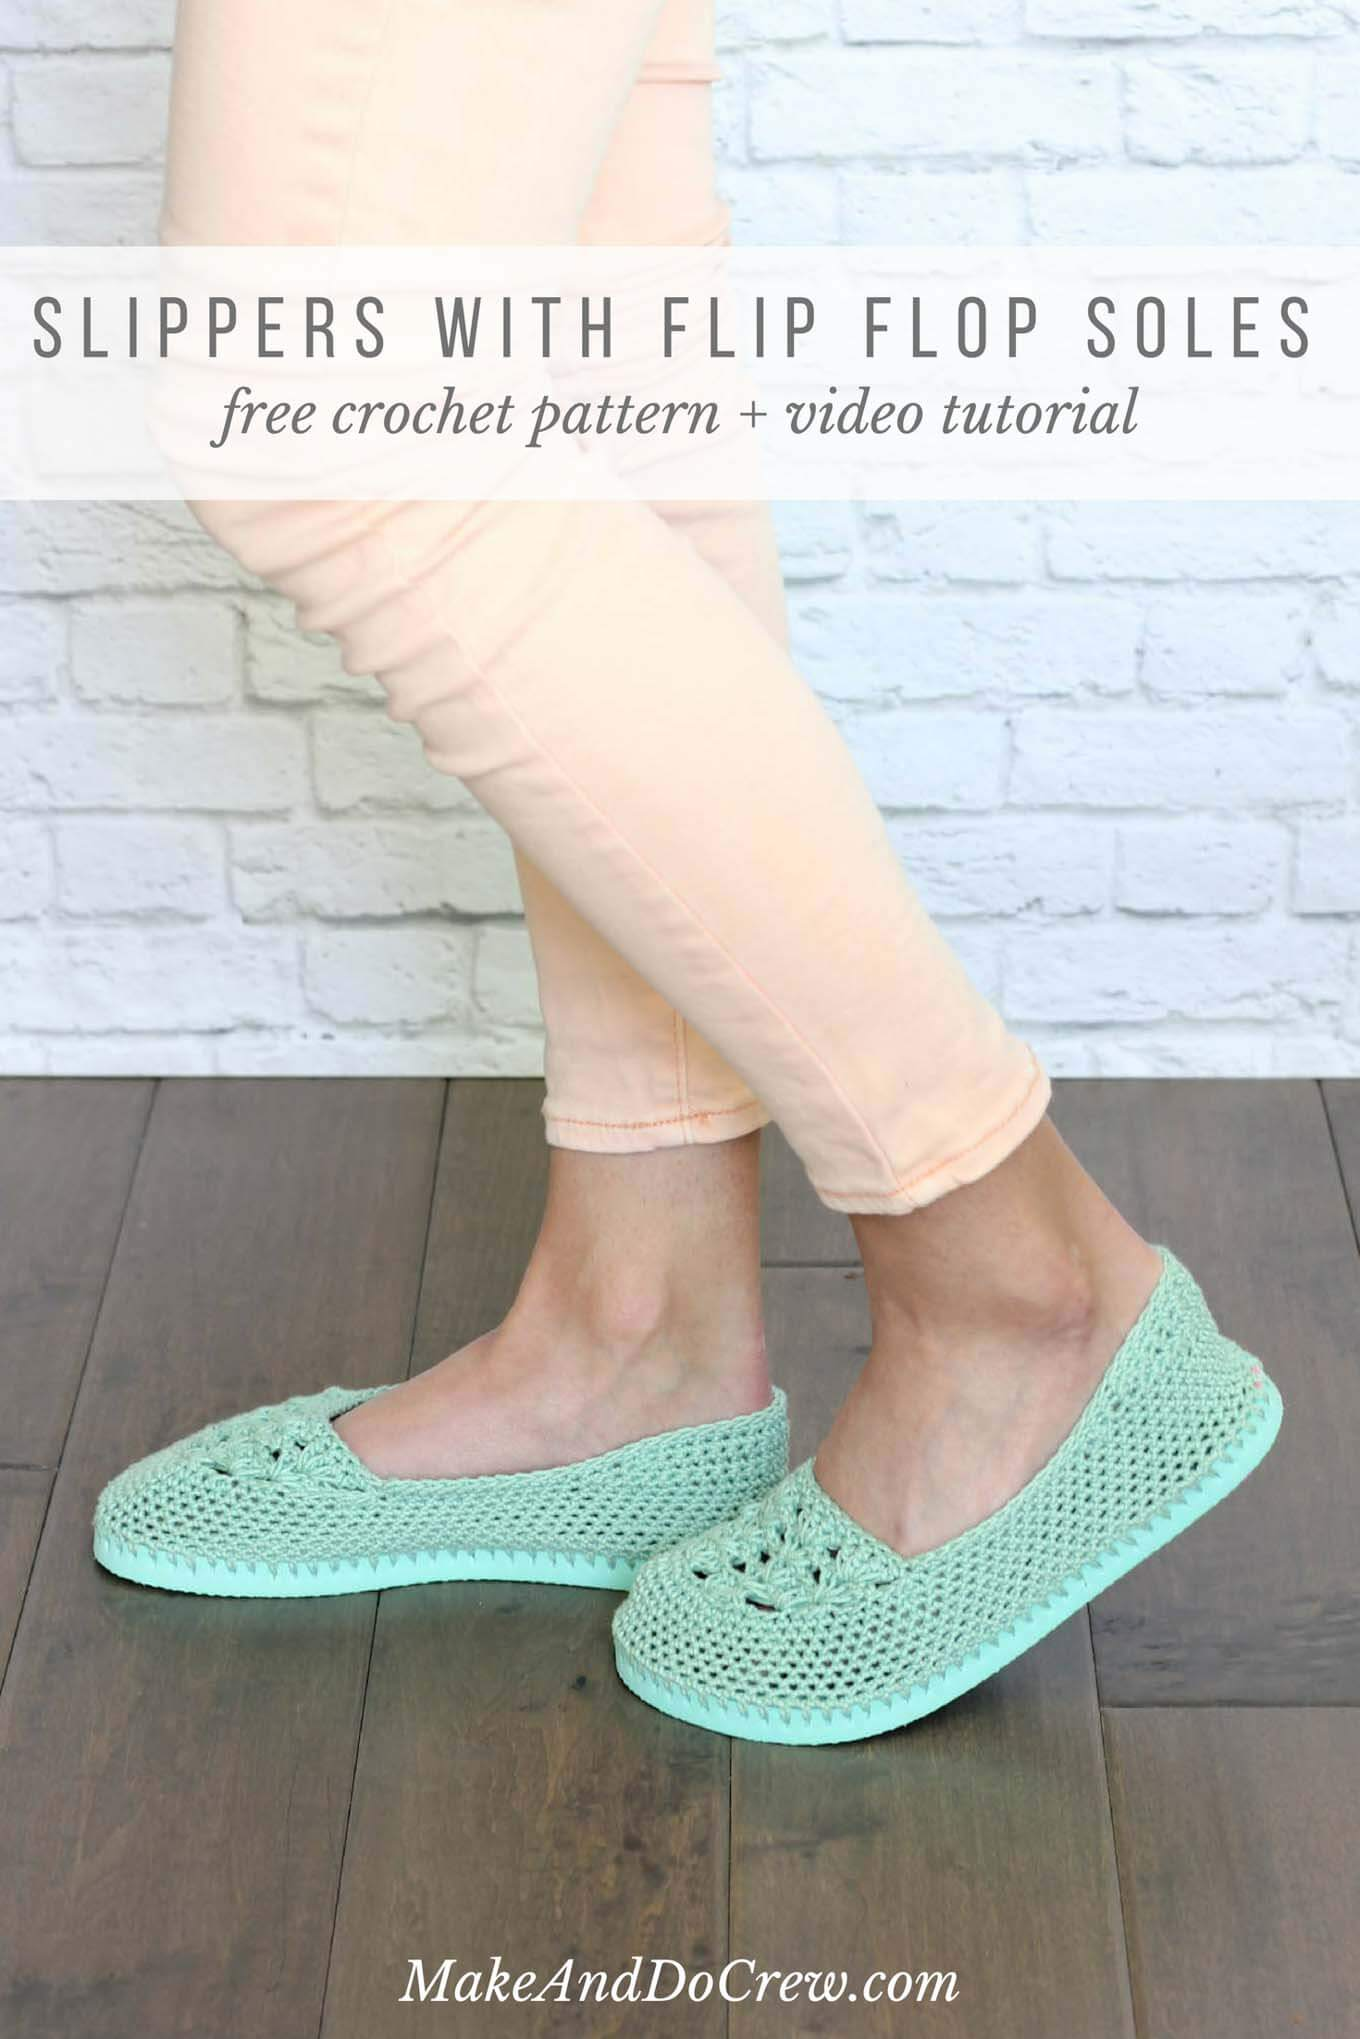 7831bd8eb17a8 This free crochet slippers with flip flop soles pattern is a collaboration  with Lion Brand Yarn. This post contains affiliate links.